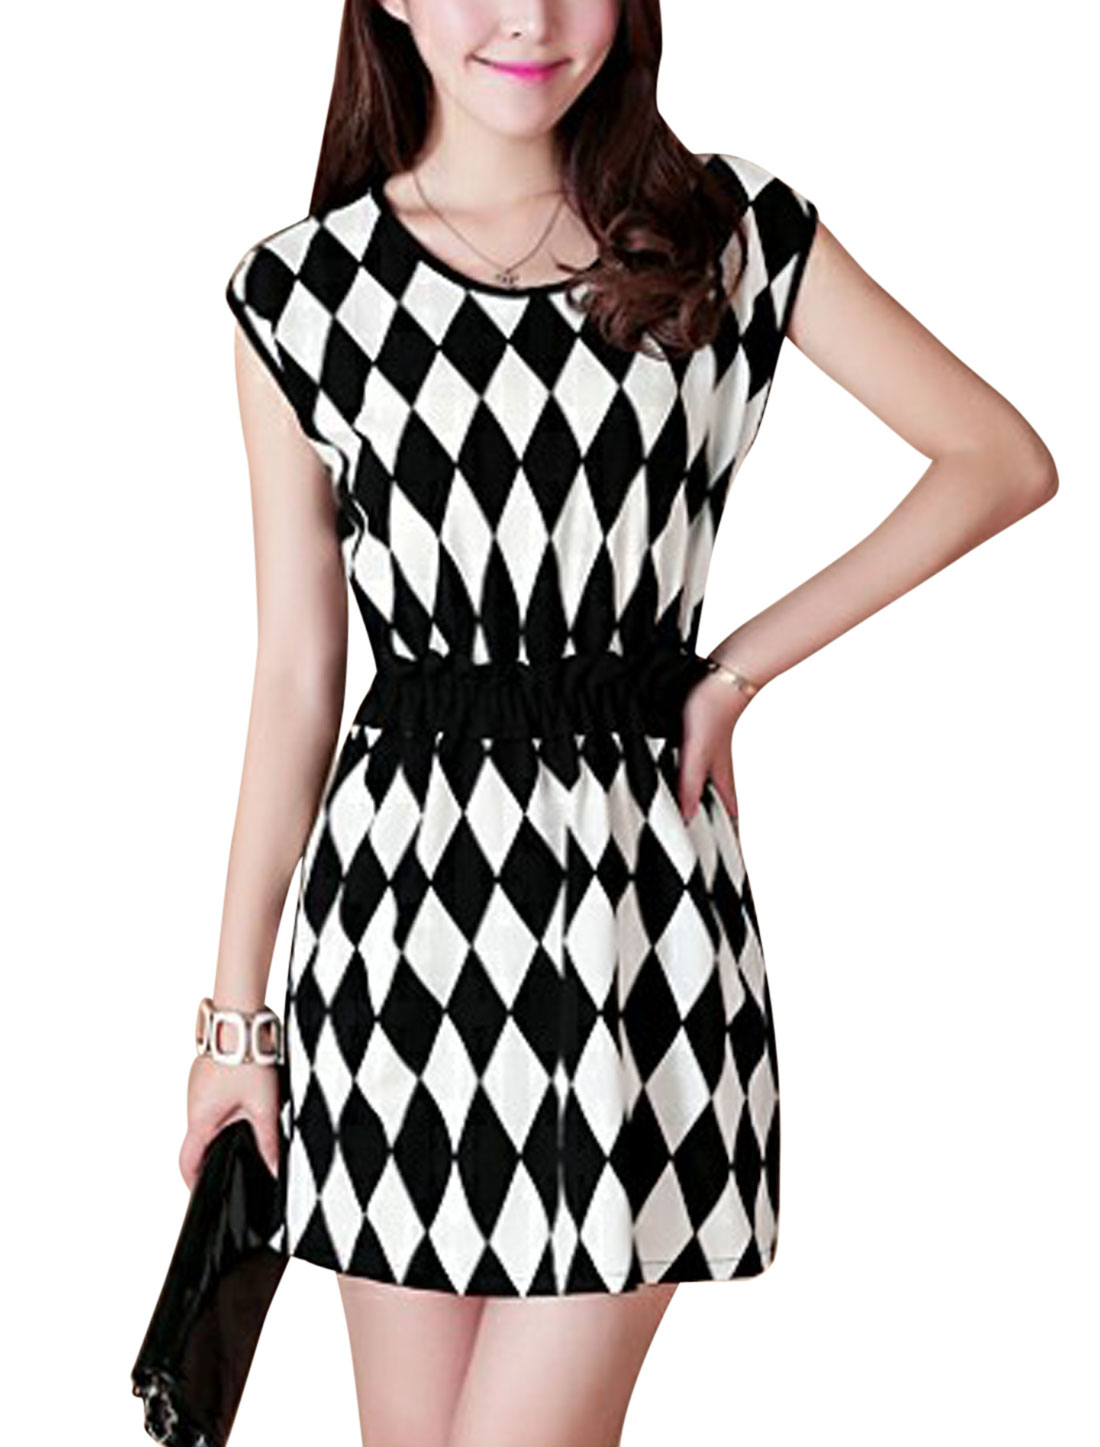 Lady Cap Sleeve Argyle Pattern Lining Dress Black White XS